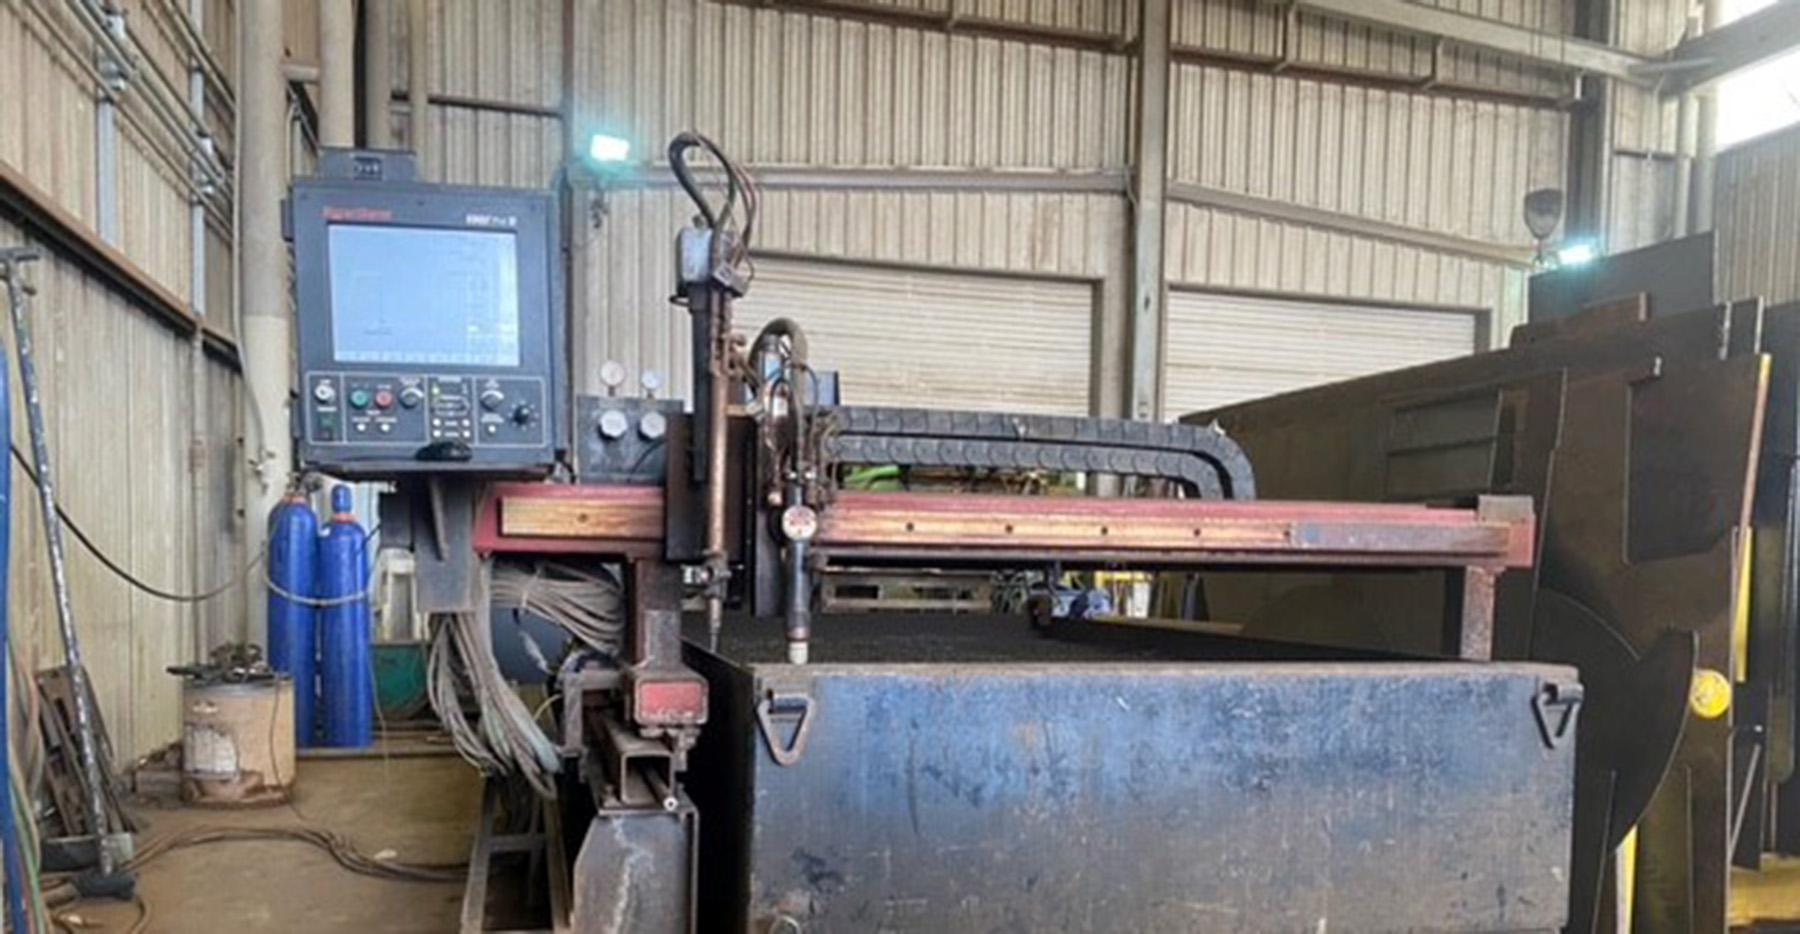 USED, KOIKE ARONSON PLATE PRO 1500 PLASMA CUTTING TABLE WITH HYPERTHERM HT2000 LHF POWER SOURCE